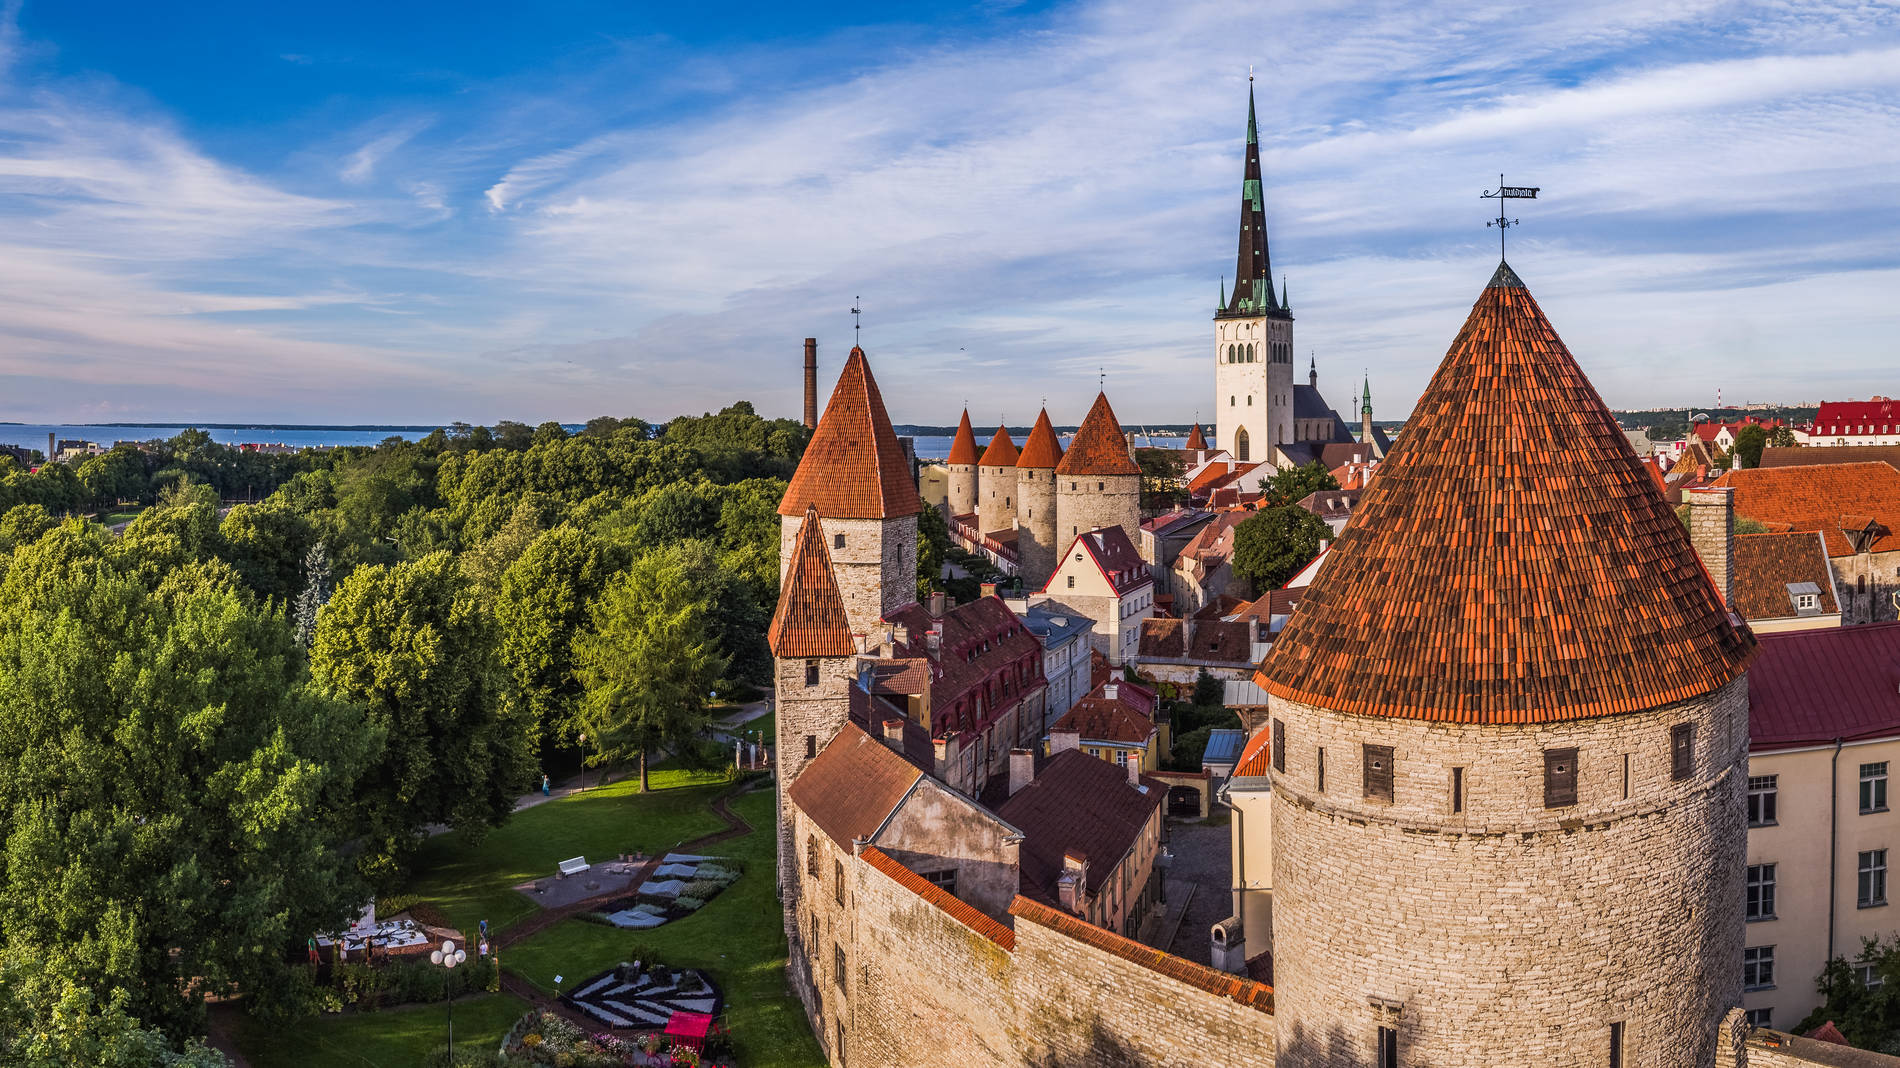 Picture of the city wall of Tallinn with several towers and a view to the sea. Photo by: Kaupo Kalda